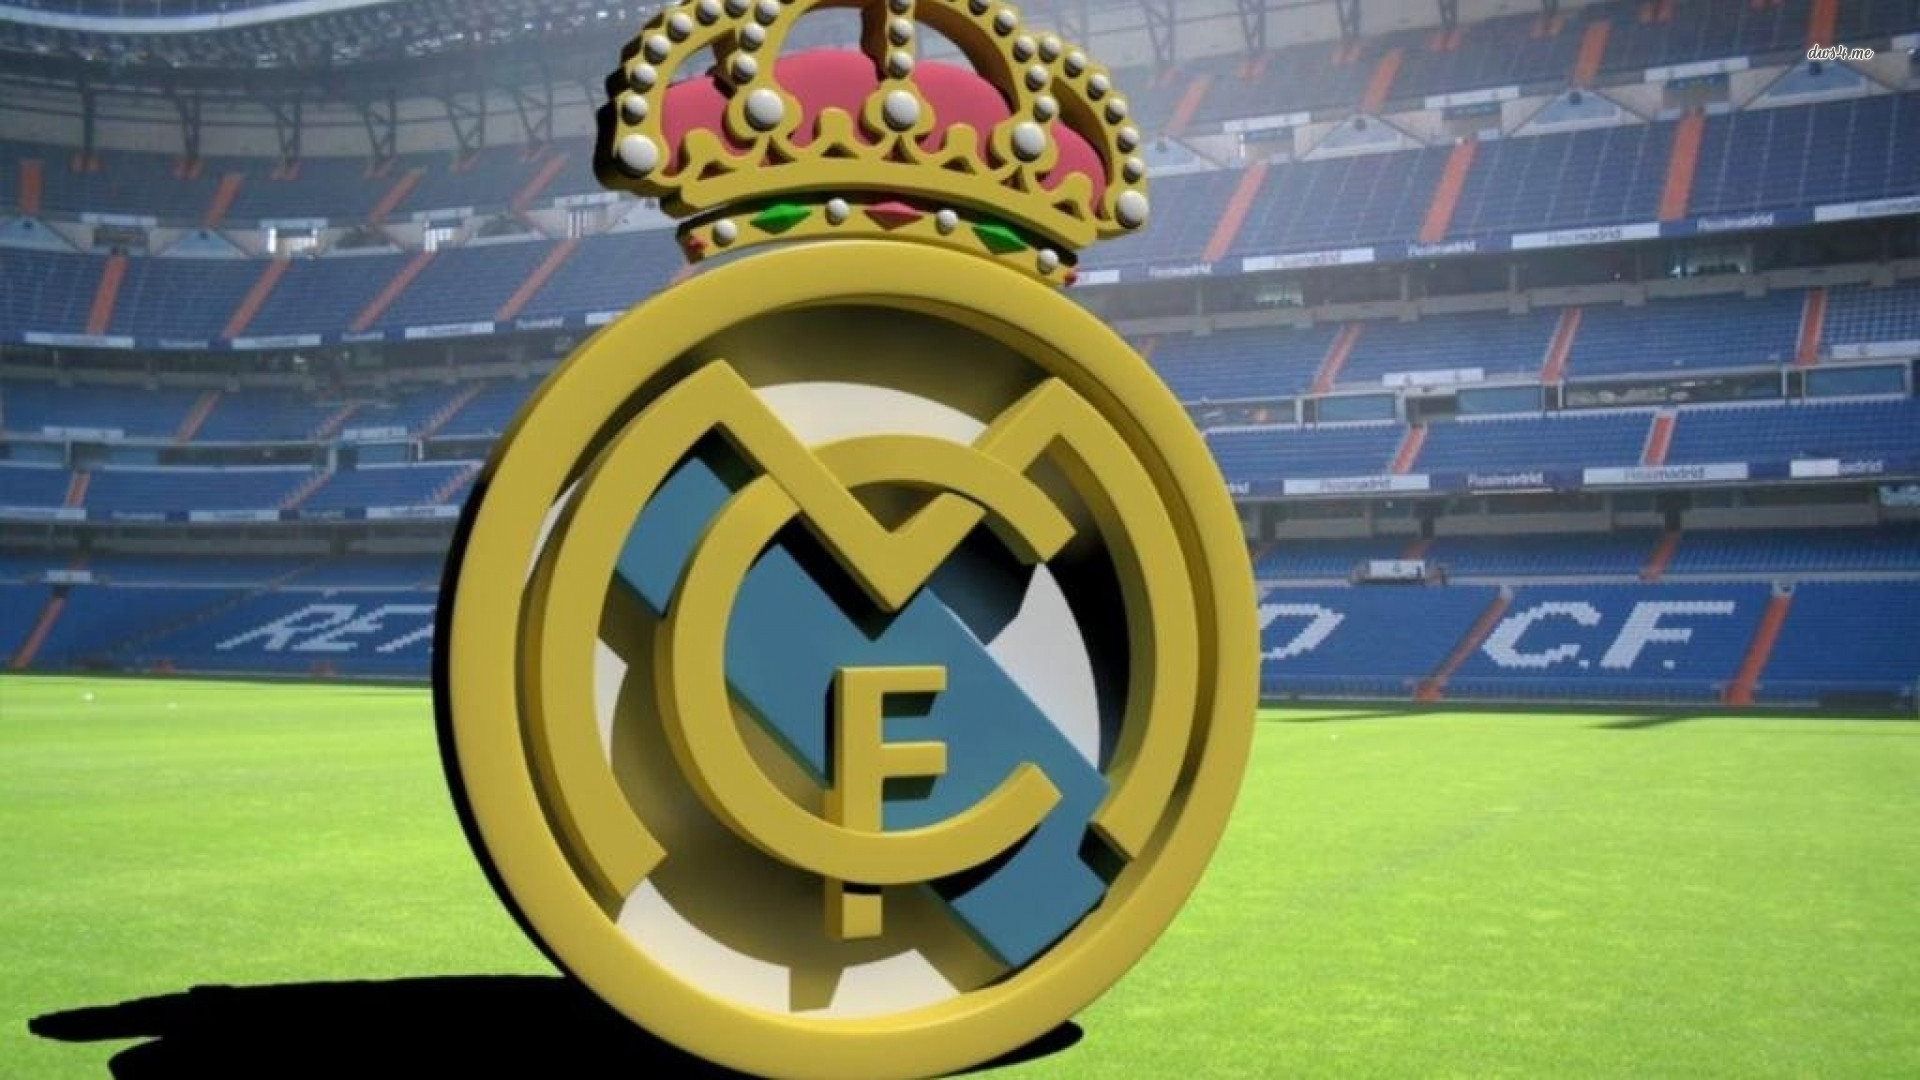 Real madrid logo wallpaper hd wallpaper wallpaper real madrid logo wallpapers hd 2015 voltagebd Images